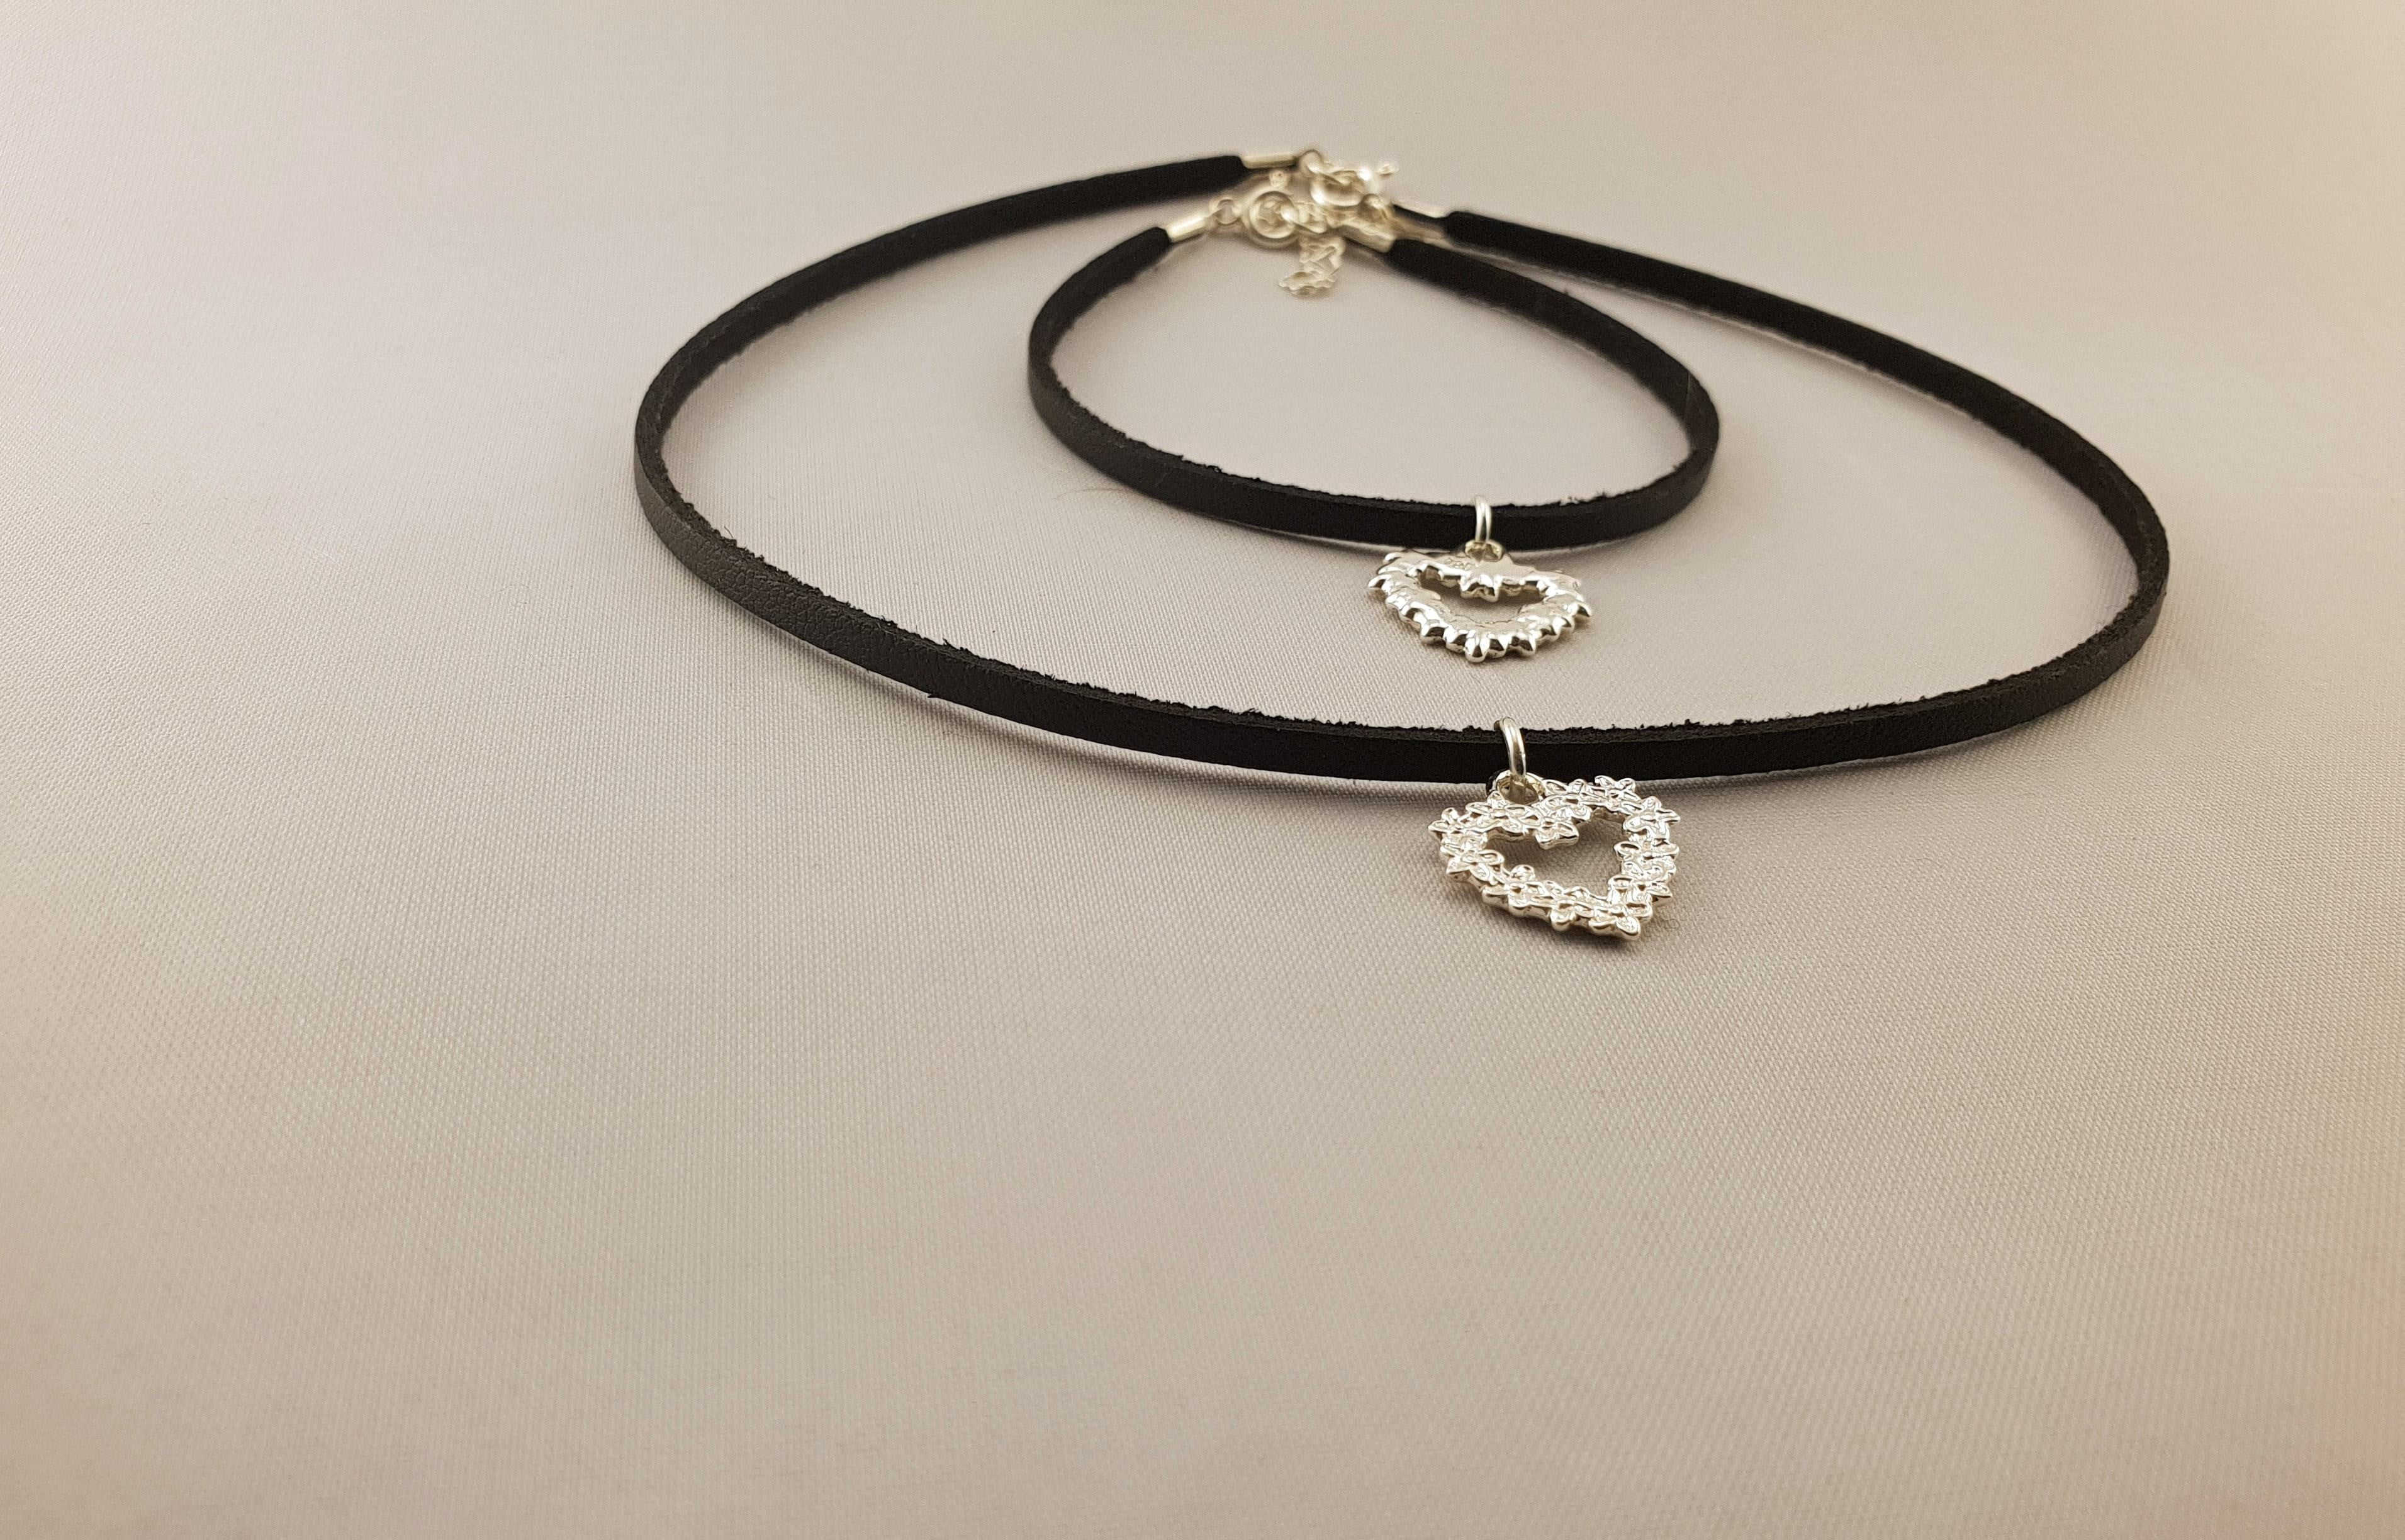 Leather Collection - BRACELET + NECKLACE | HEAVY SILVER HEART - By Janine Jewellery